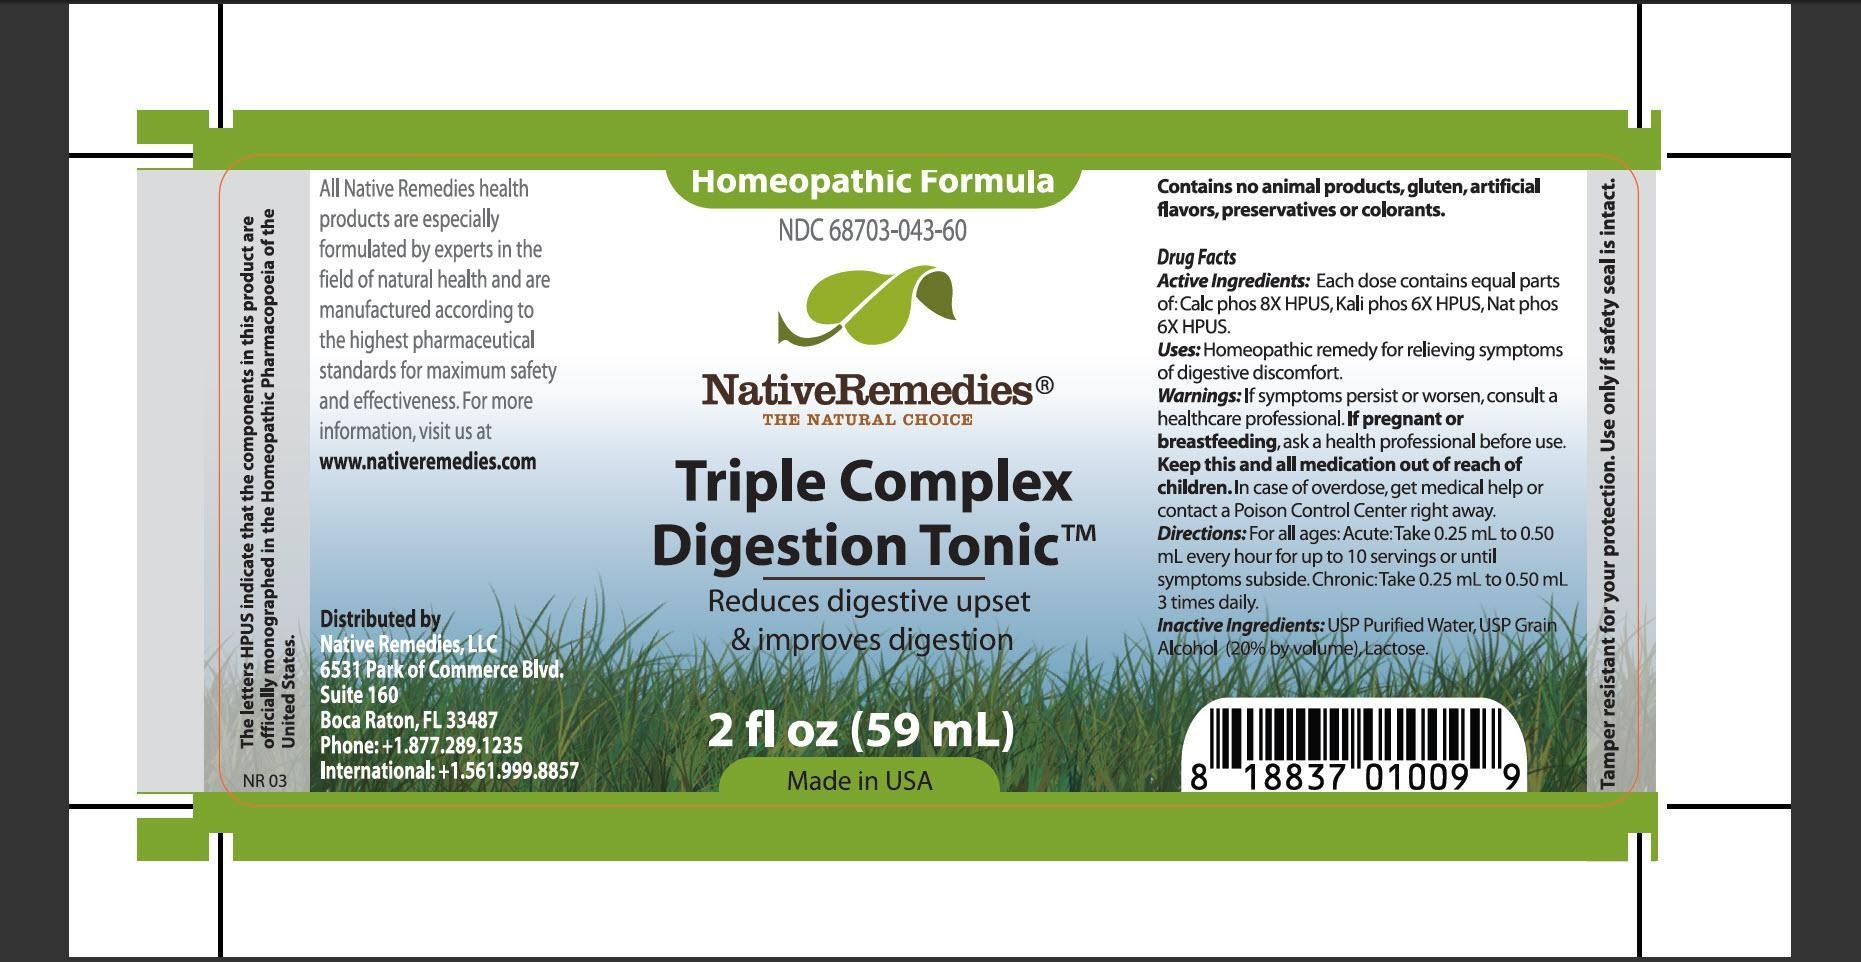 Triple Complex Digestion Tonic (Calc Phos, Kali Phos, Nat Phos) Tincture [Native Remedies, Llc]